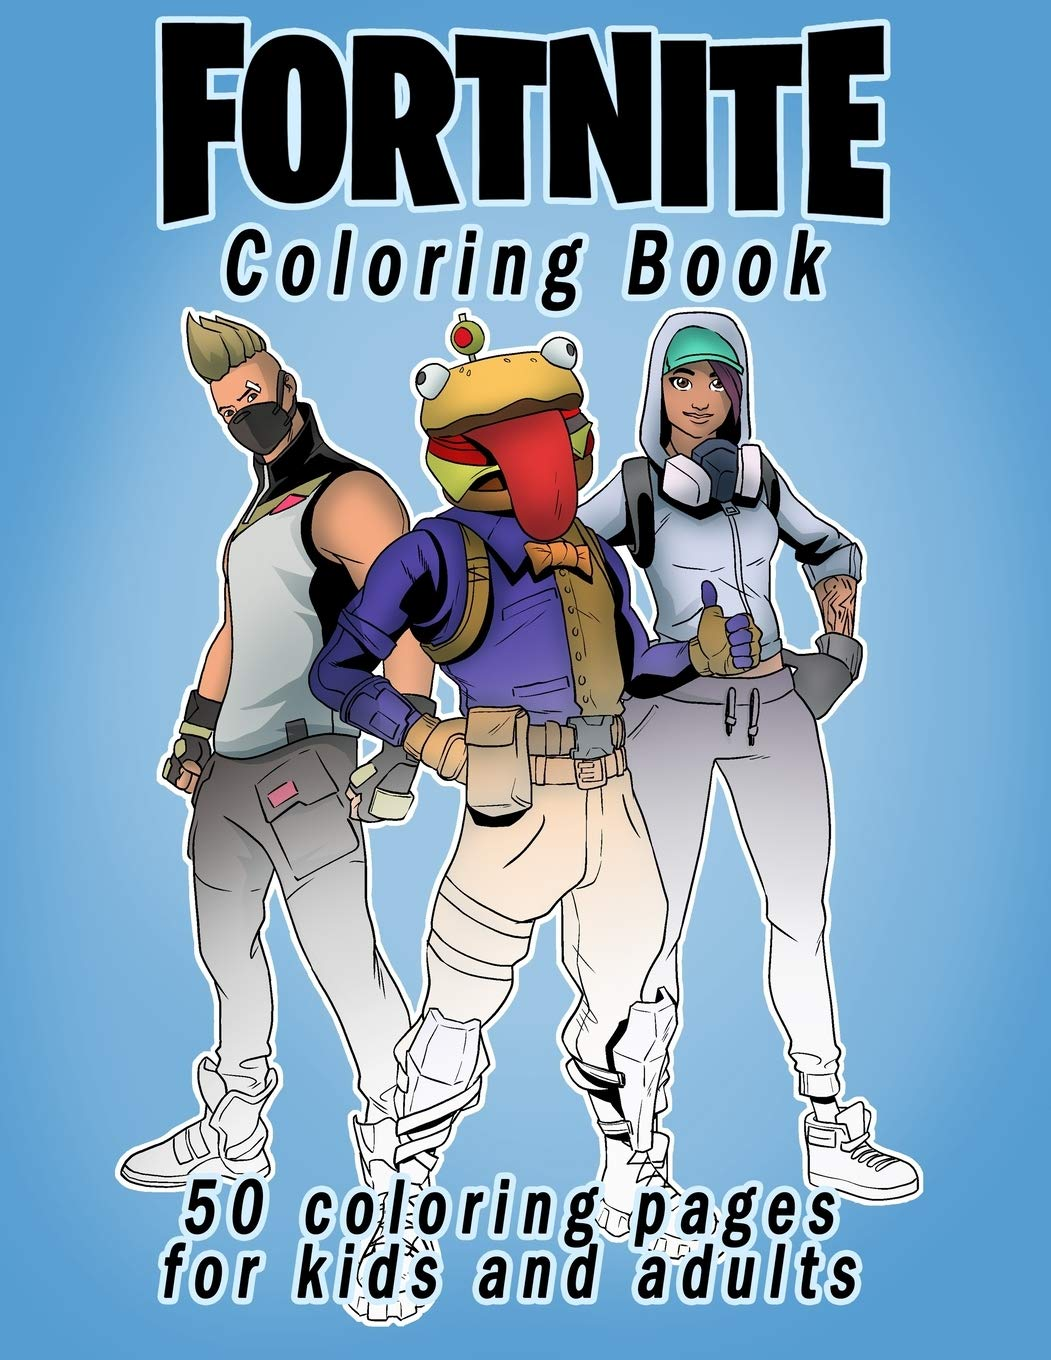 Fortnite Coloring Book  50 Coloring Pages For Kids And Adults  Fortnite Coloring Book For Kids And Adults +50 Amazing Drawings  Characters Weapons And Other